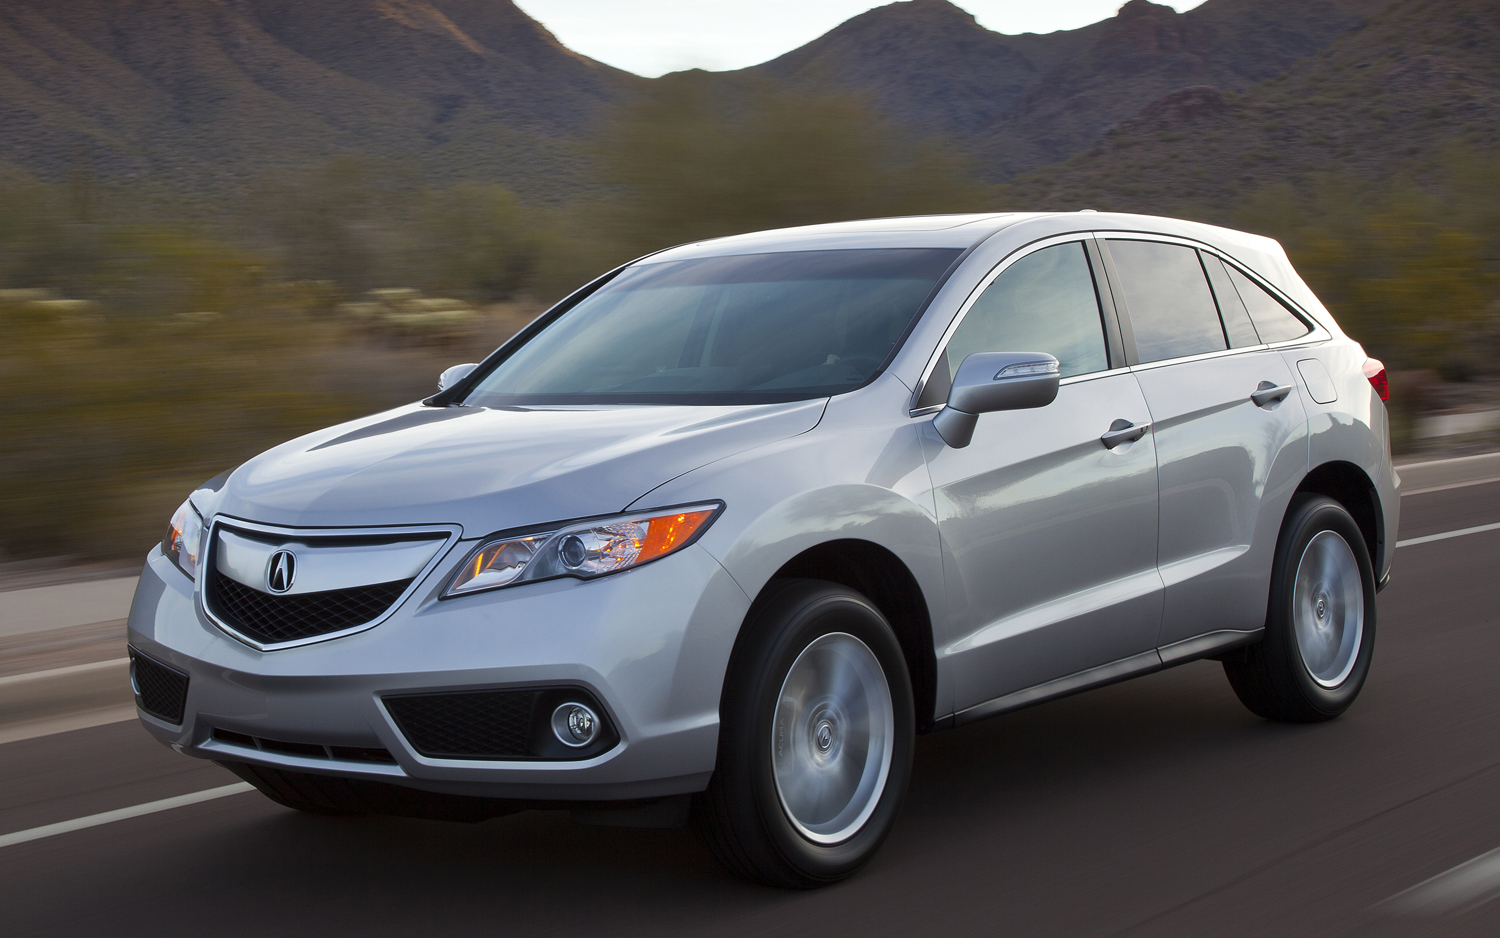 2014 acura rdx pictures information and specs auto. Black Bedroom Furniture Sets. Home Design Ideas